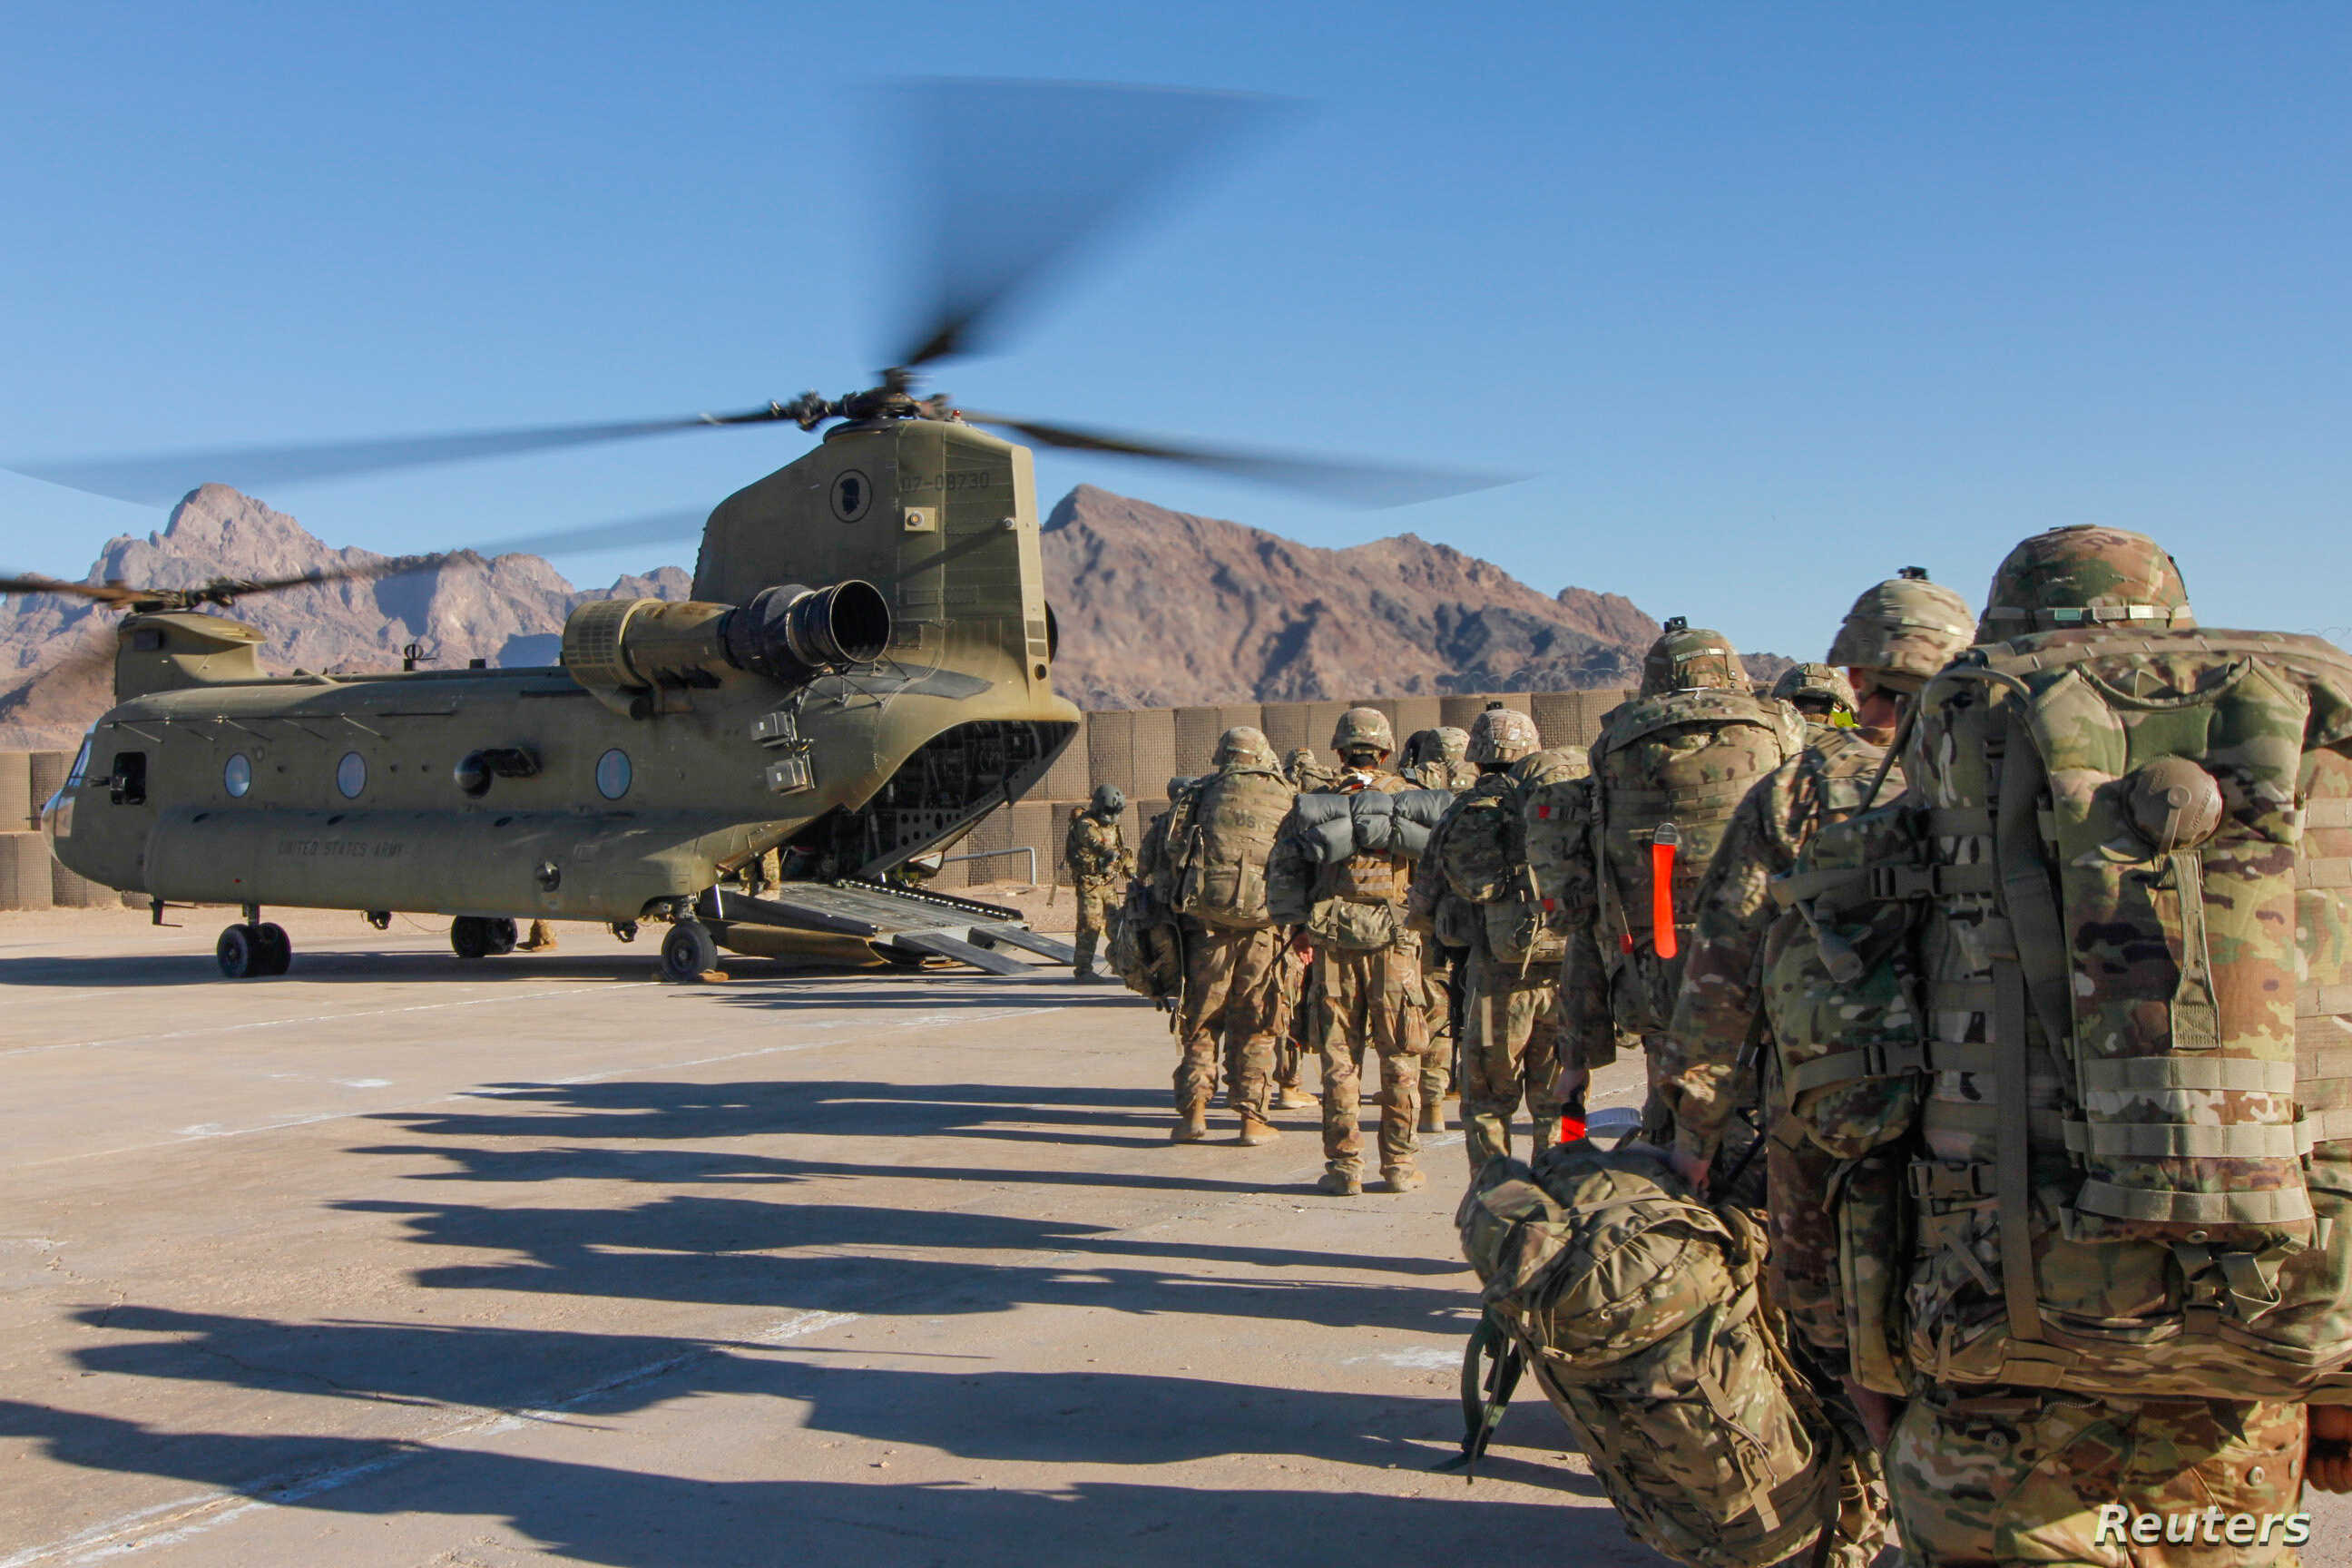 Uncertainty Surrounds US Pullout From Afghanistan | Voice of America - English